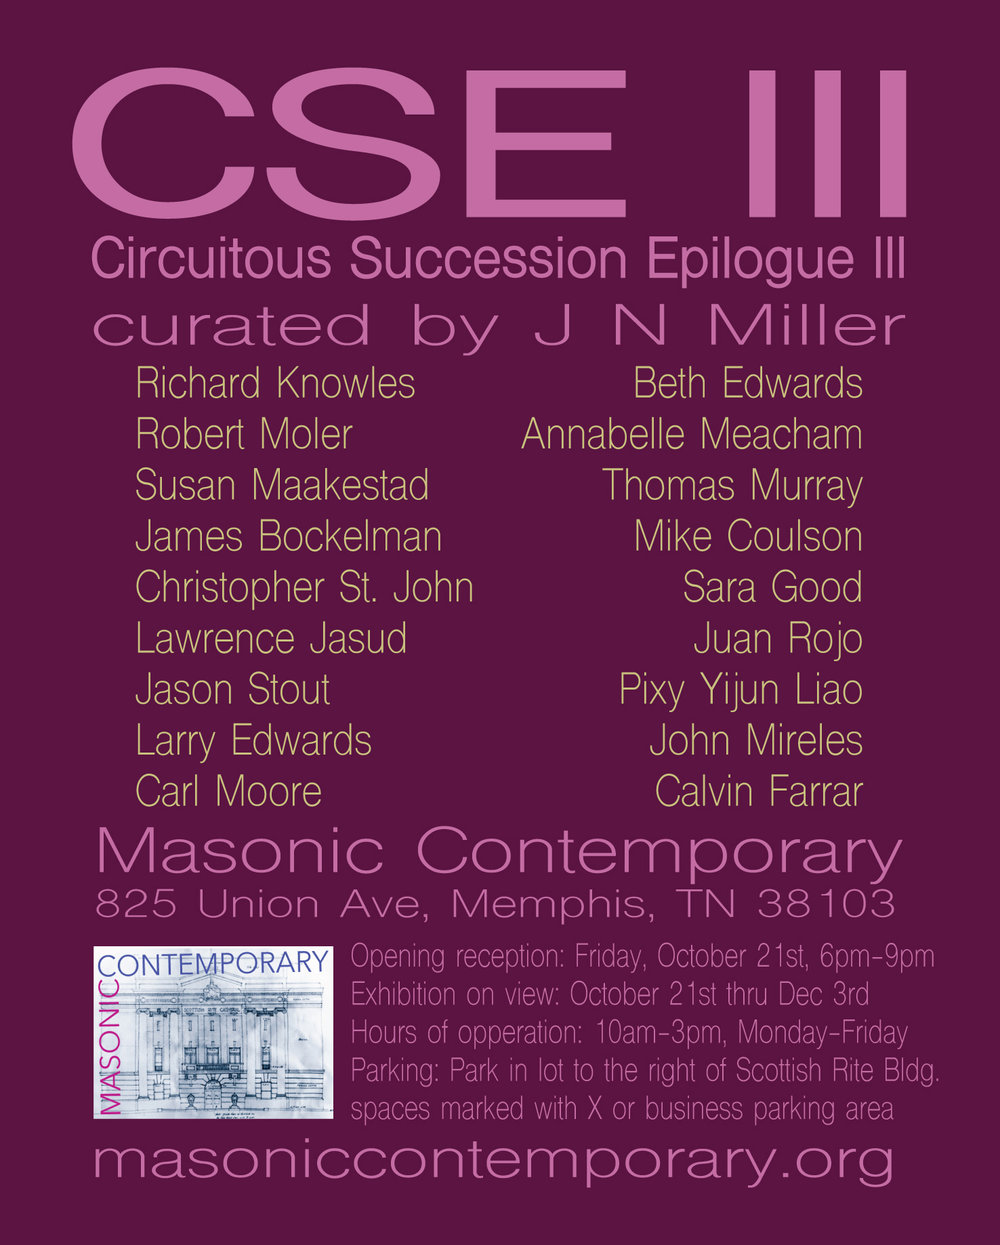 cselll_showcard_october2016.jpg